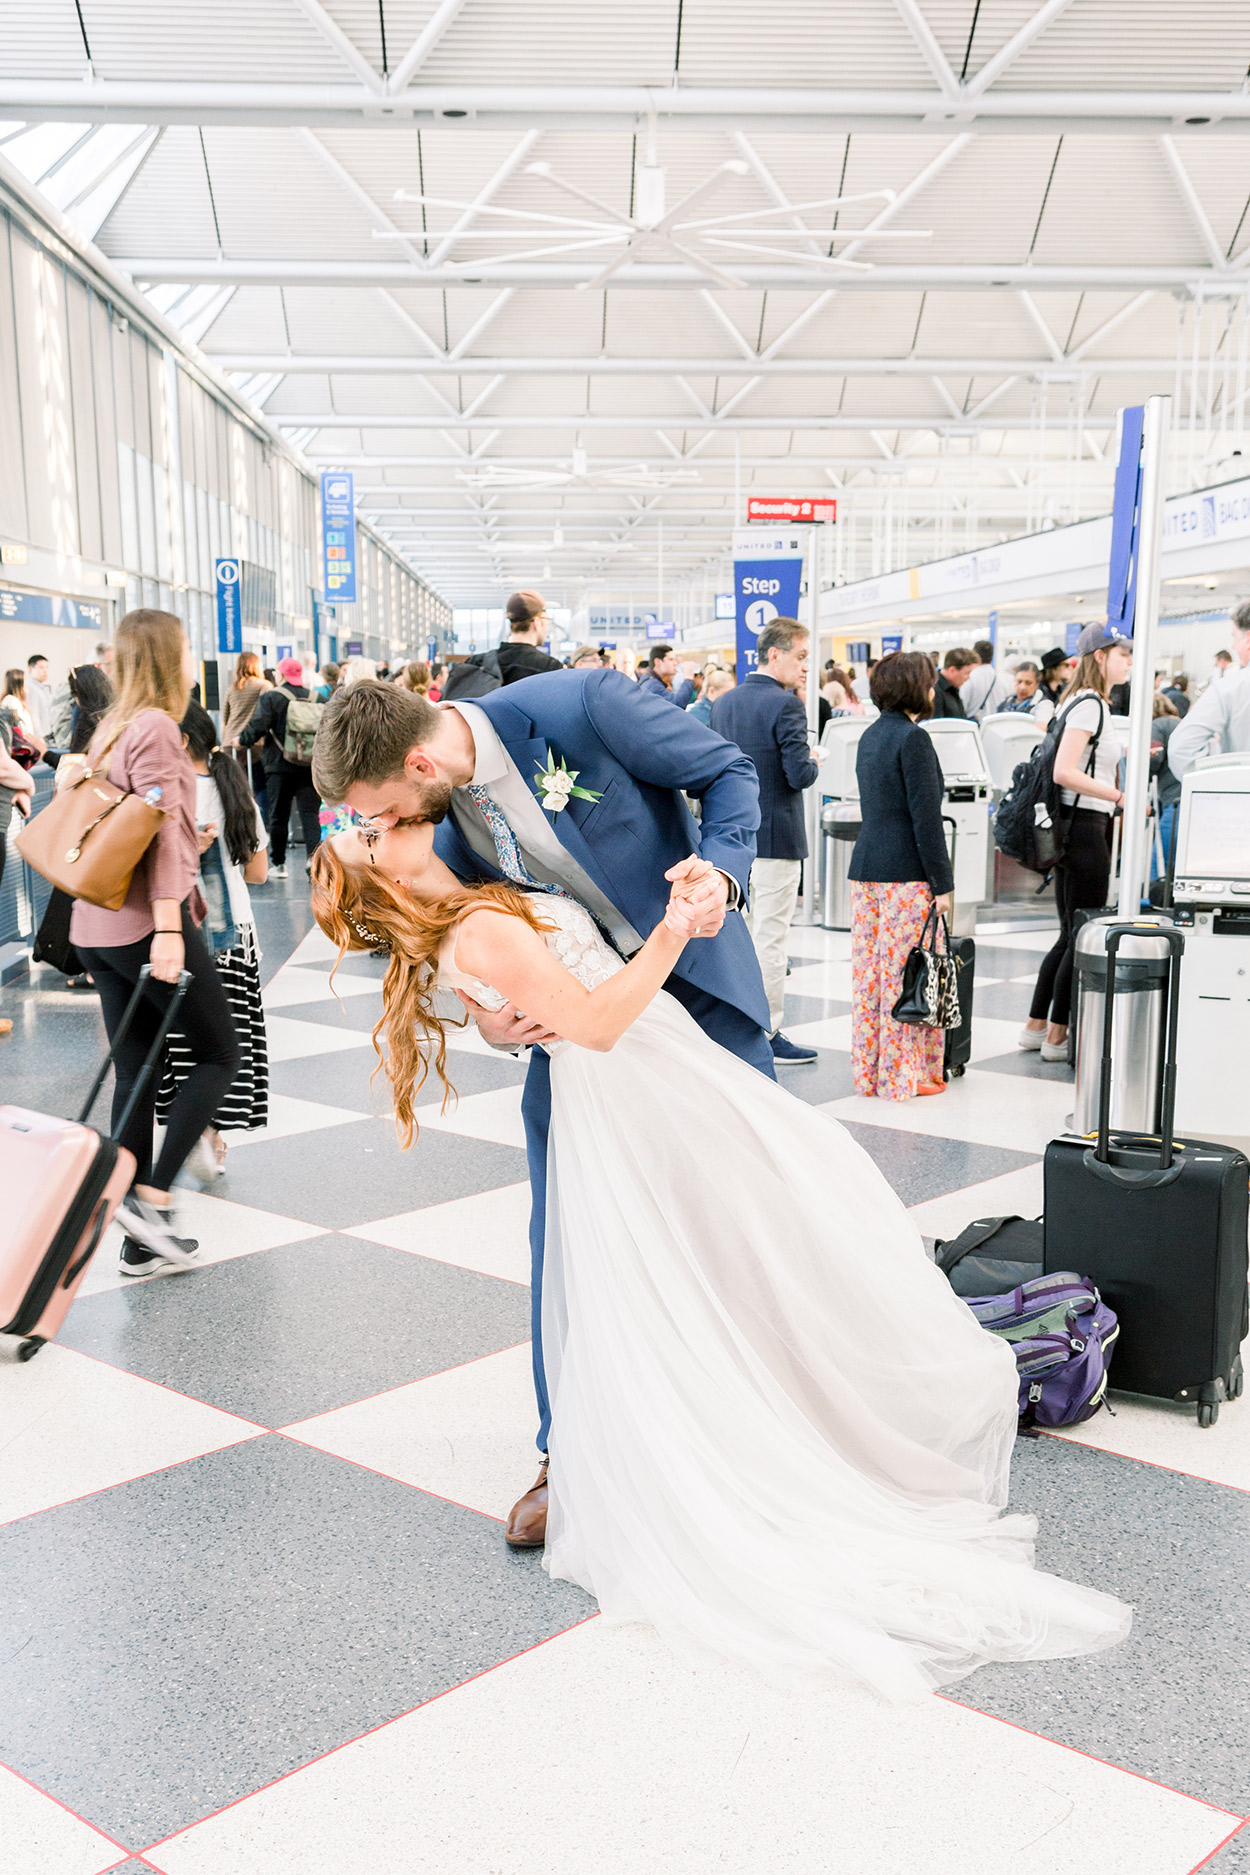 Bride and Groom Kissing at Airport